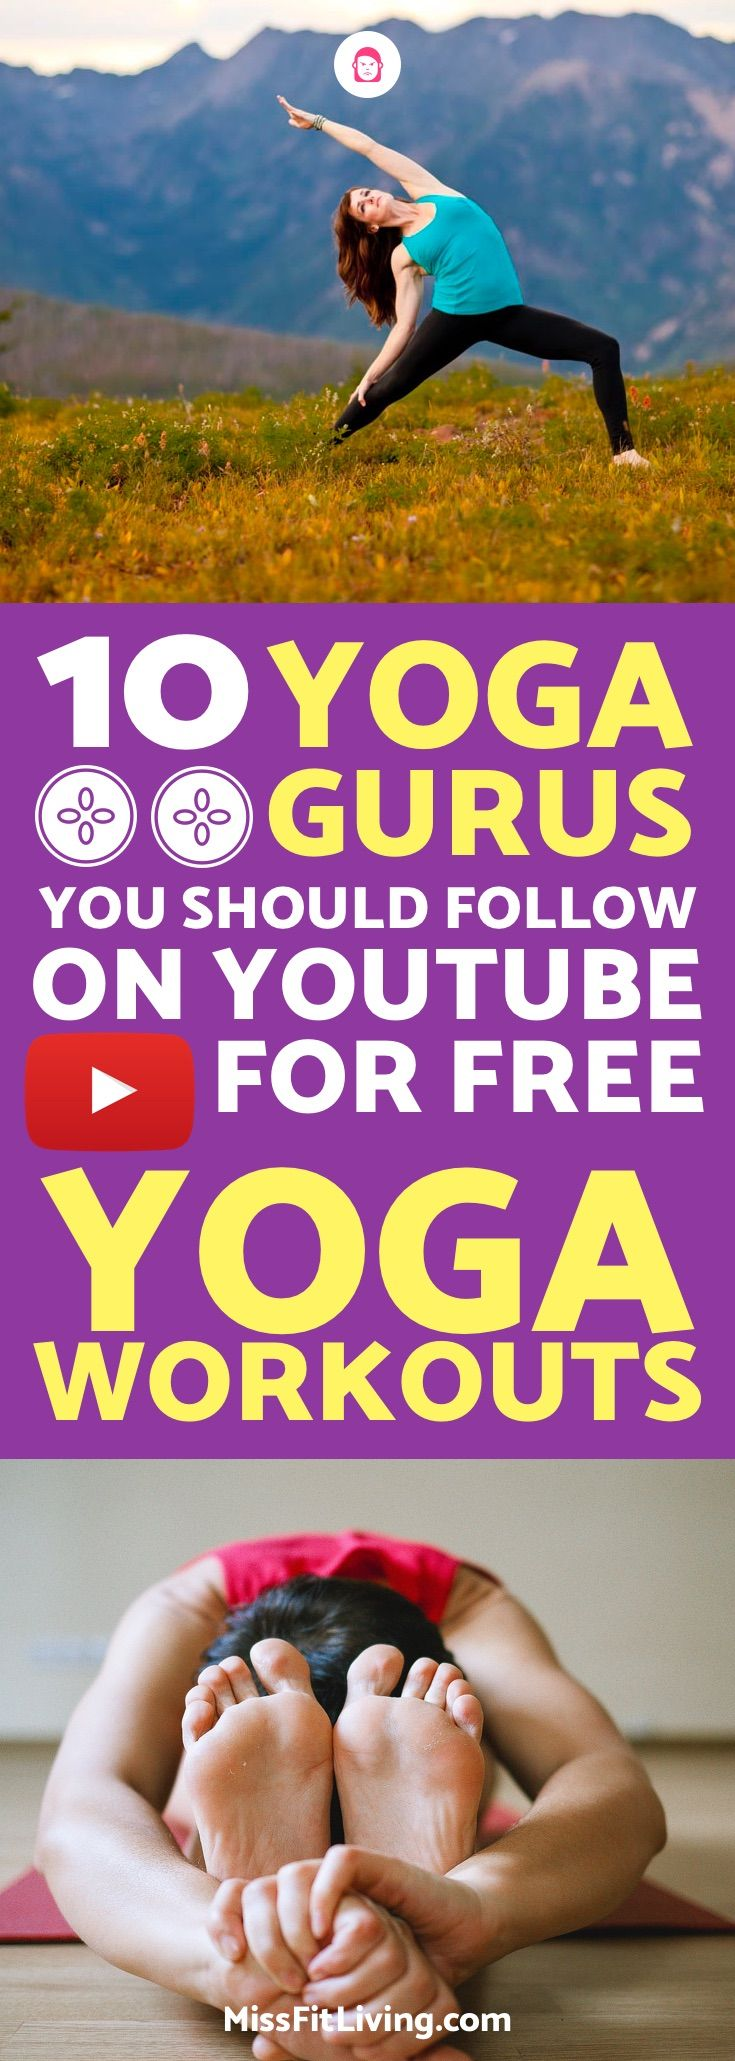 Finding good yoga workouts can be tough. Thankfully, these youtube channels prov...